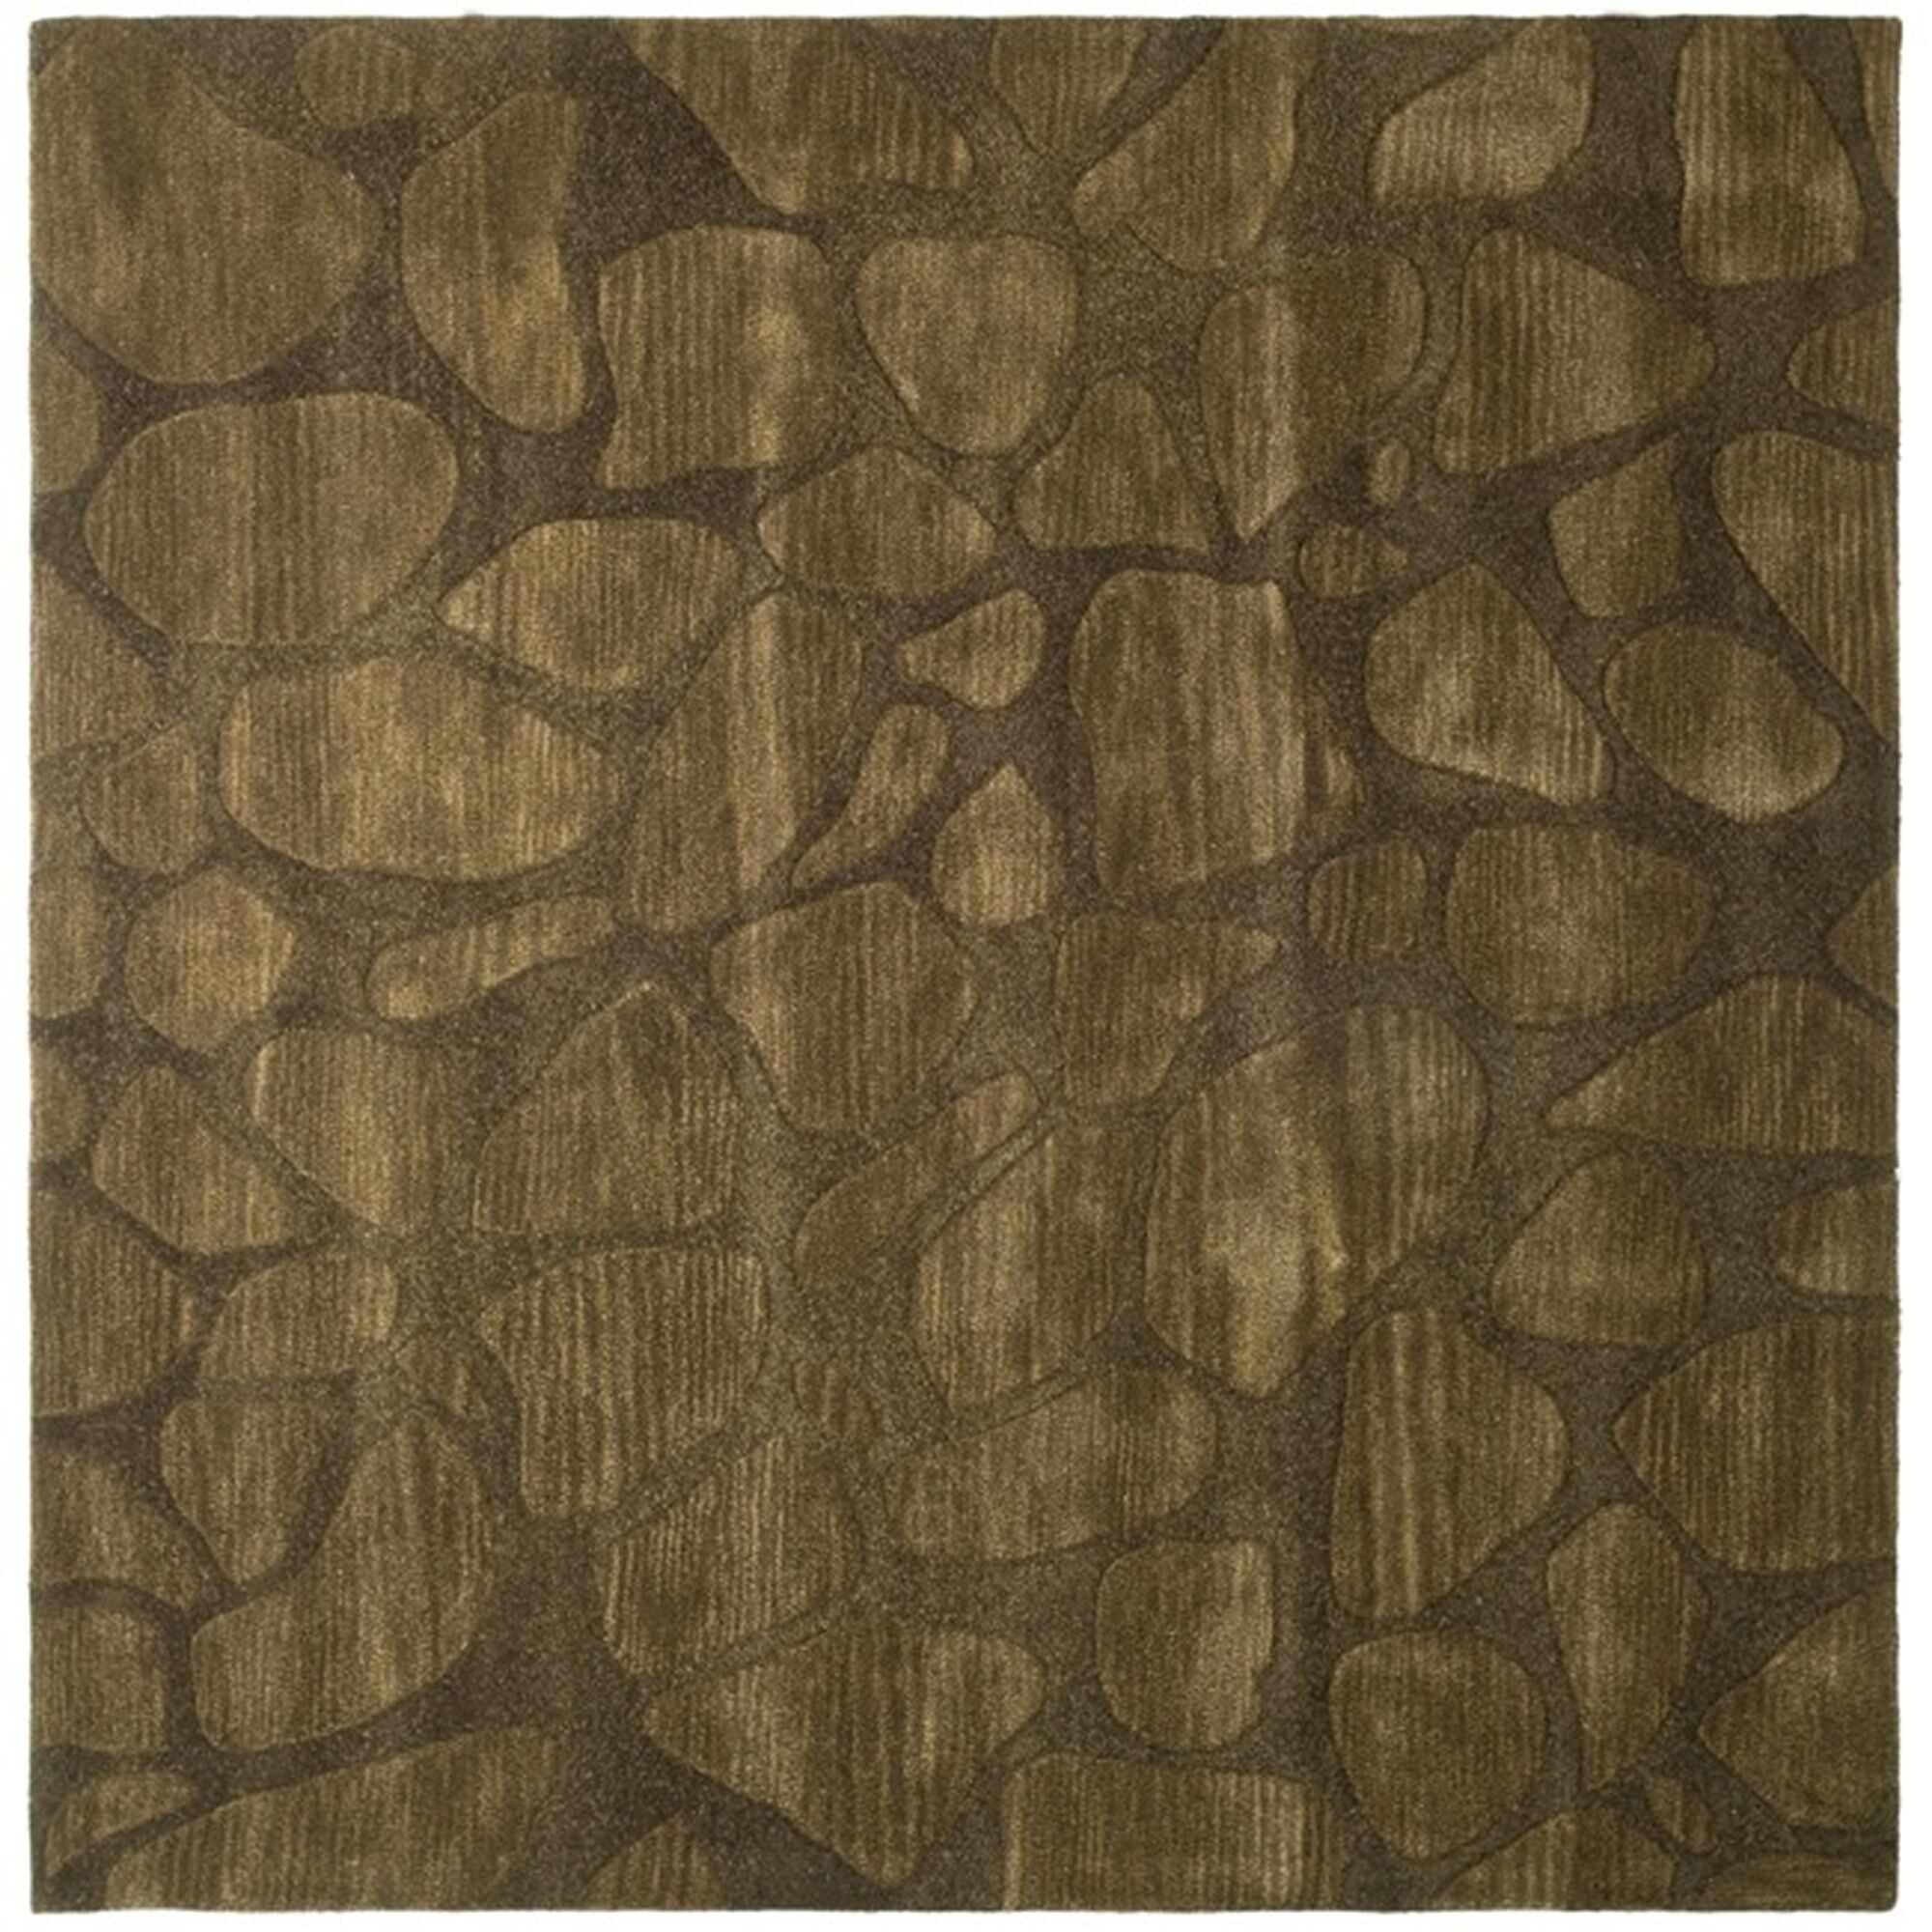 Boone Dark Brown Area Rug Rug Size: Square 6'